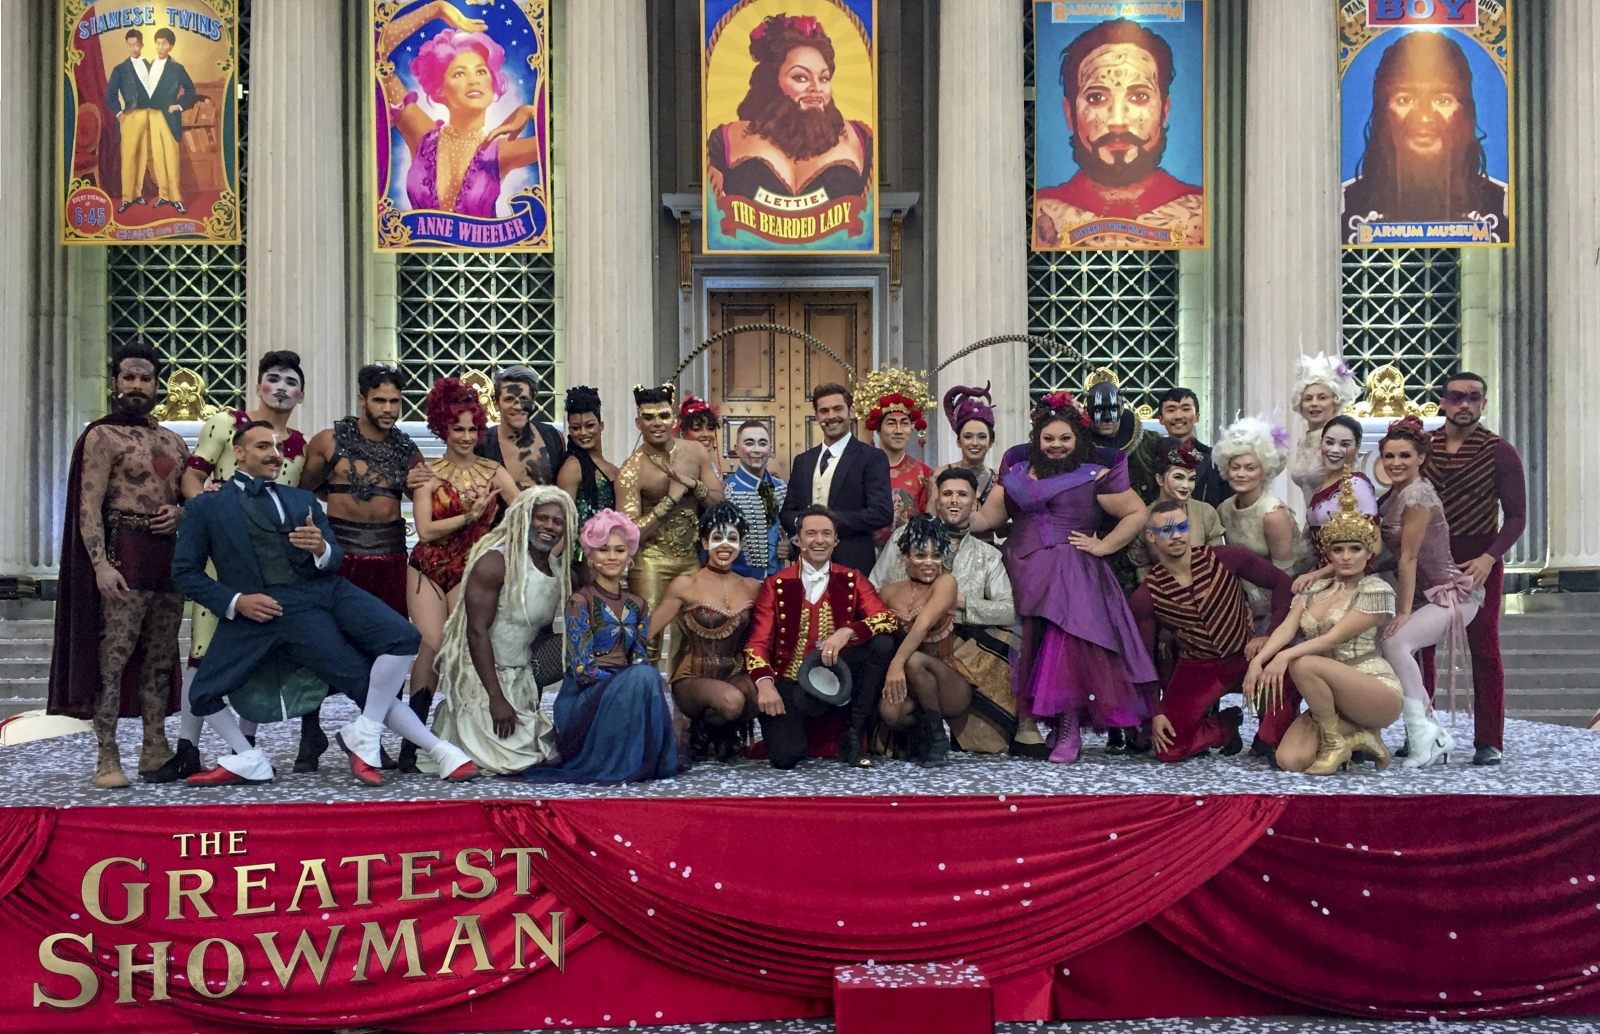 Burbank CA The Golden Globe Winning And Oscar Nominated Musical Film Greatest Showman Produced A Live 2 Minute Ad In December Of 2017